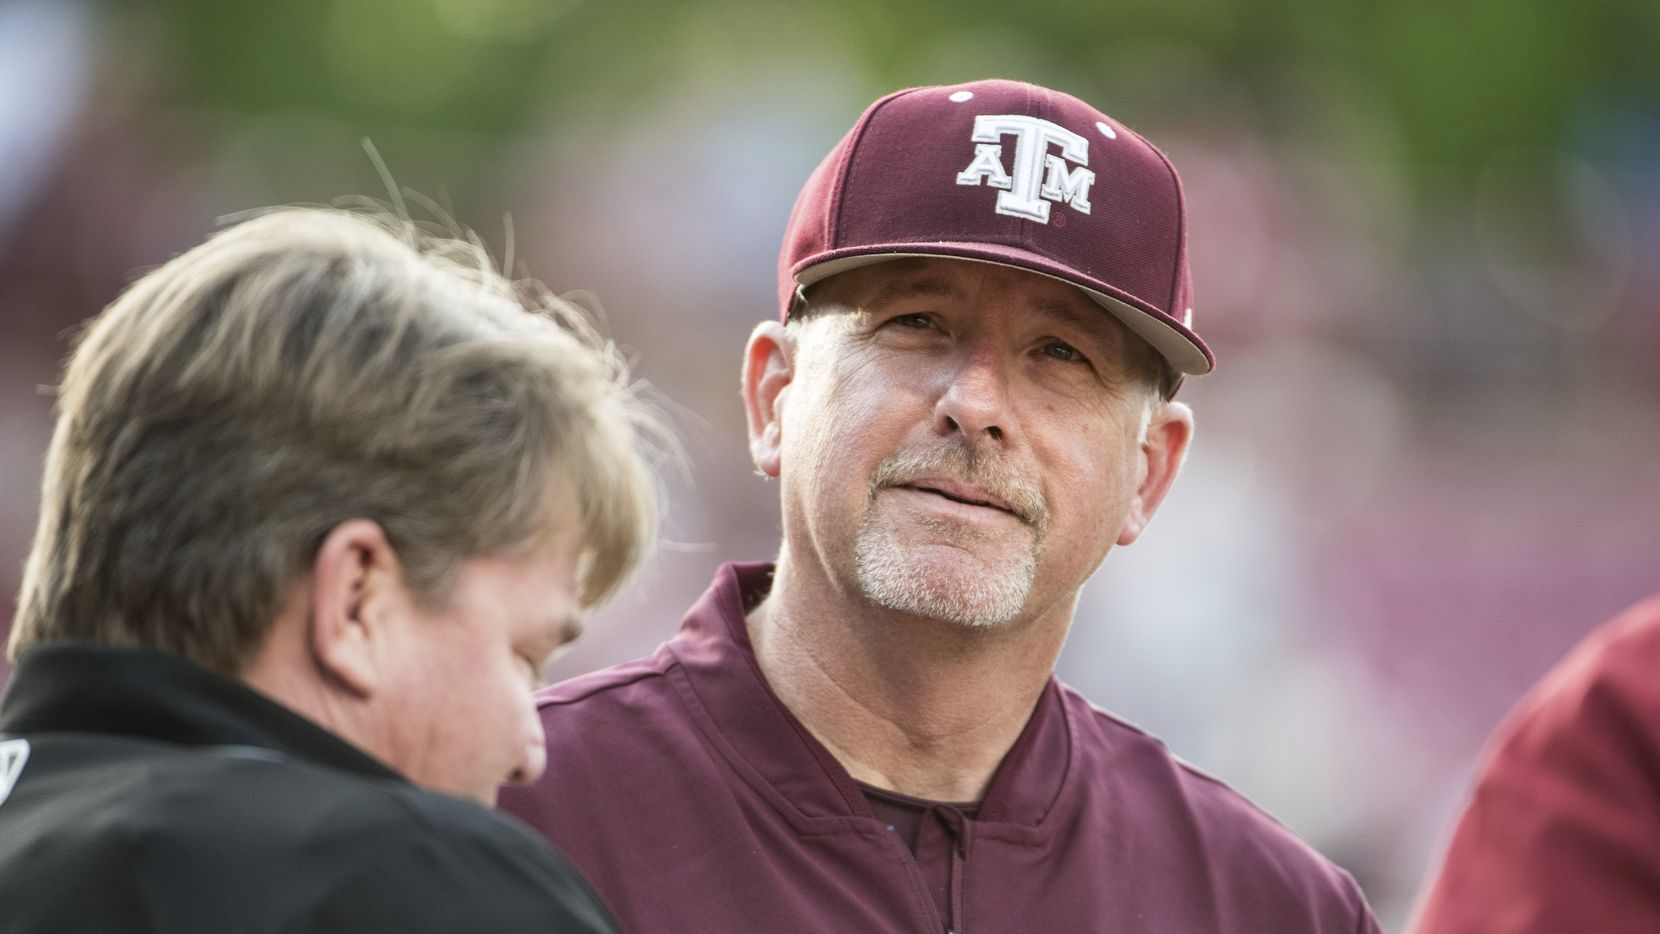 Texas A&M head coach Rob Childress listens during the plate meeting before an NCAA college baseball game, Thursday, April 18, 2019, in Columbia, S.C.